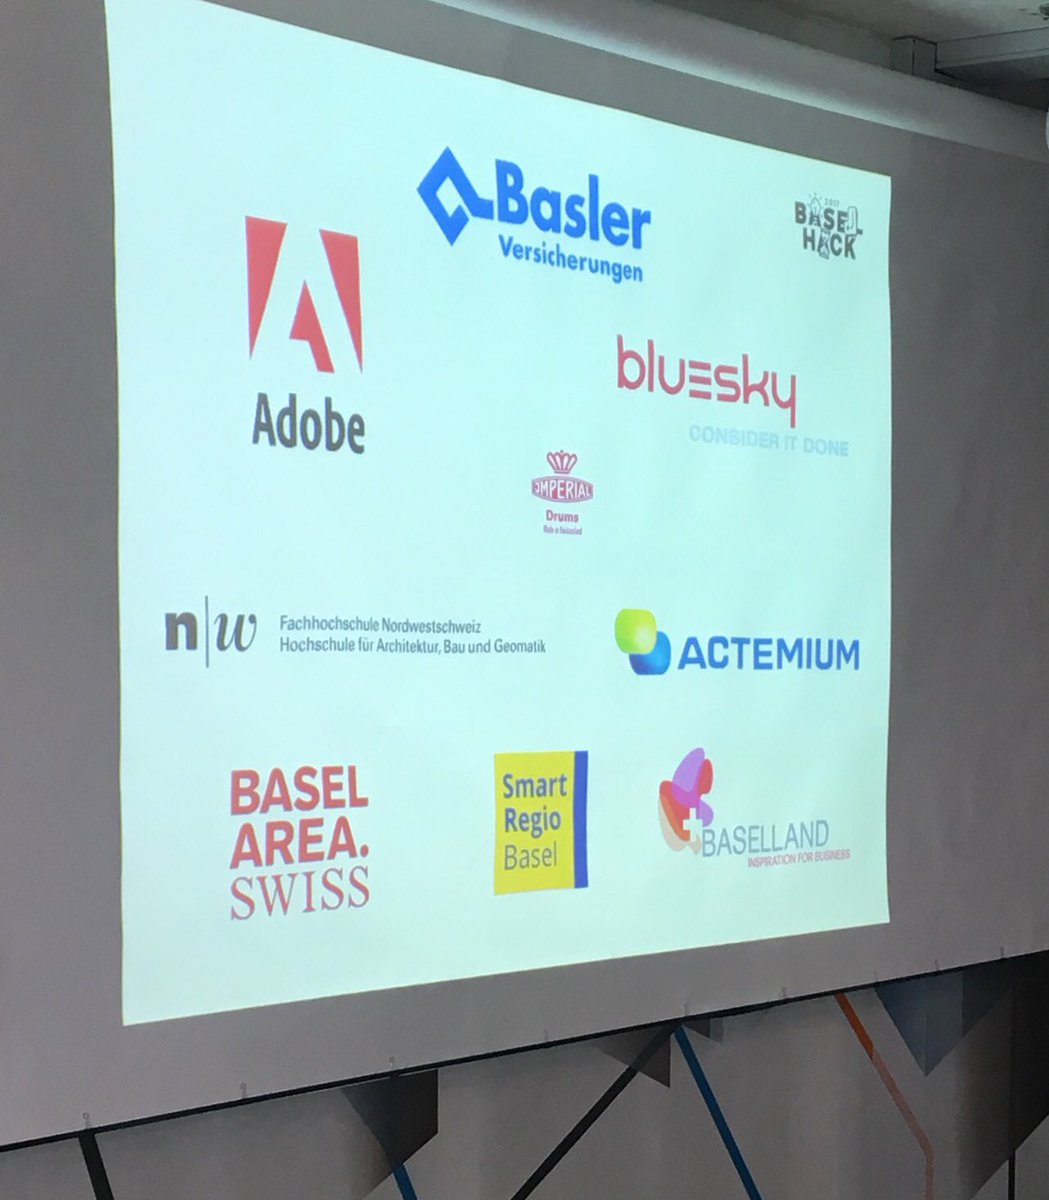 At the @BaselHack pre-event. Next week the #hackathon starts with 100+ participants.  http://www. baselhack.ch  &nbsp;   #innovation #coding #basel <br>http://pic.twitter.com/X8EOGs298e